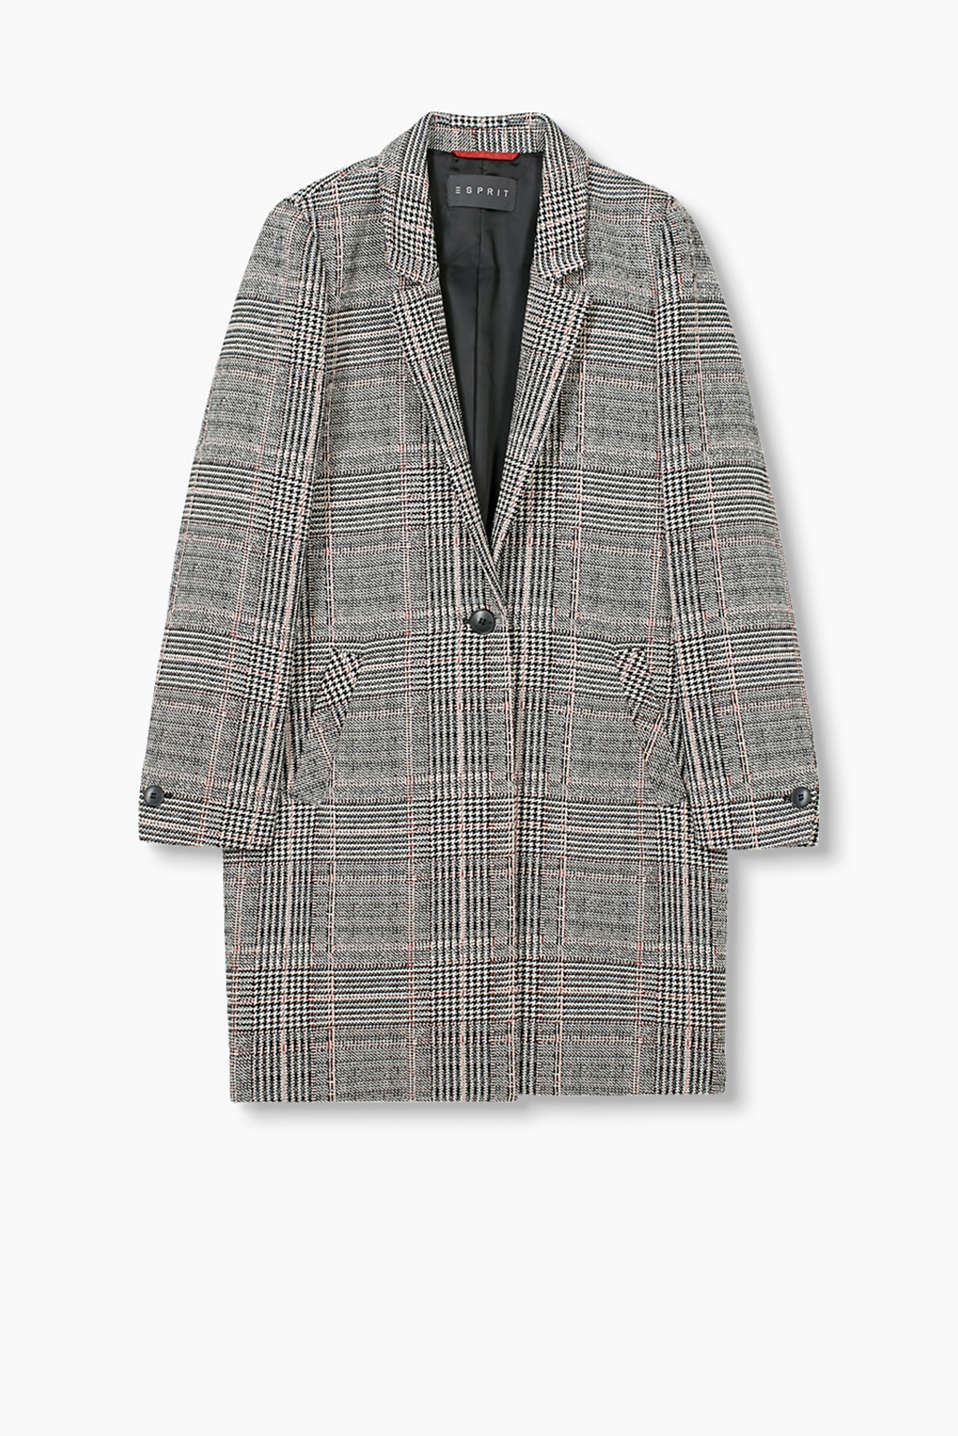 One-button blazer coat in robust cotton fabric with a check pattern